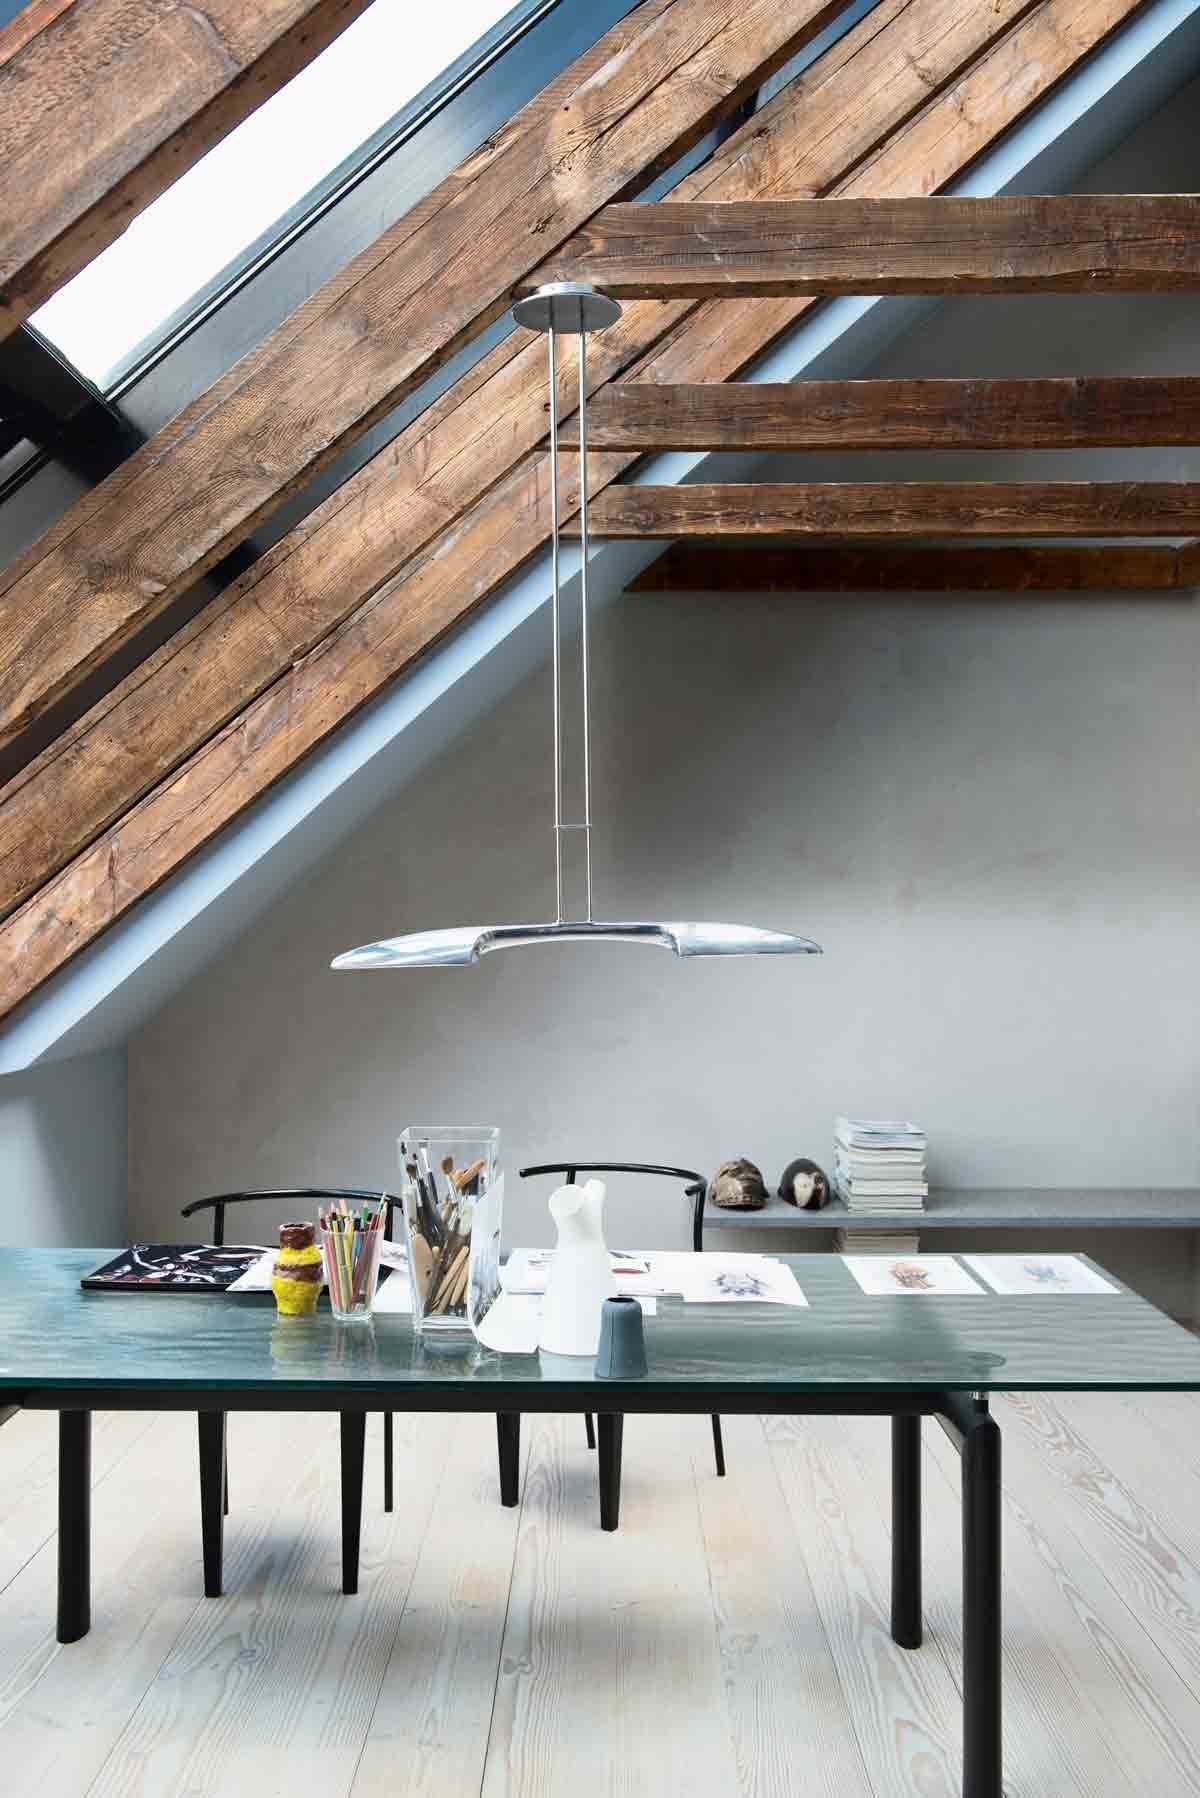 Style Classic: Exposed Beams